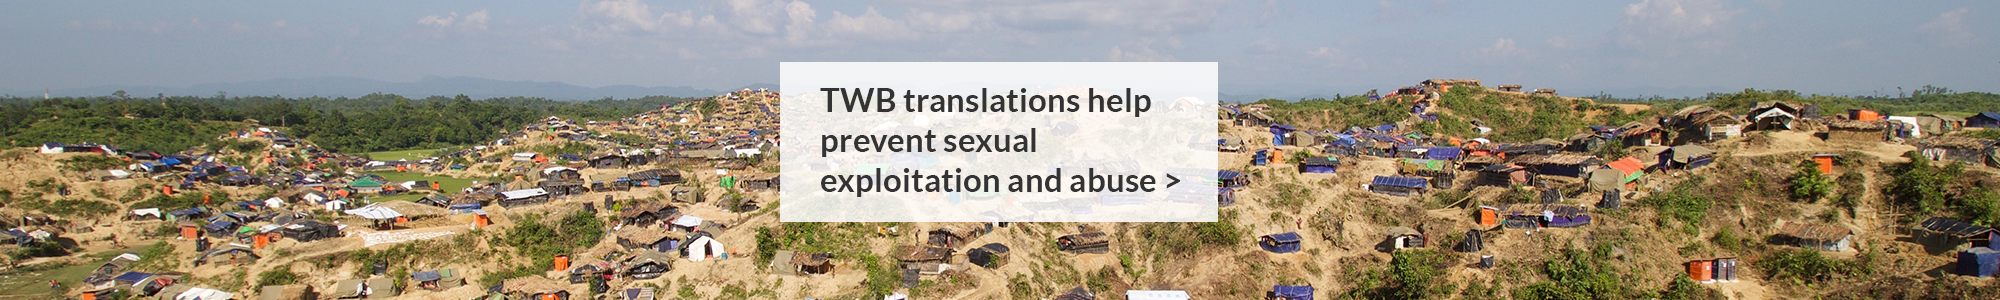 Translations prevent sexual exploitation and abuse